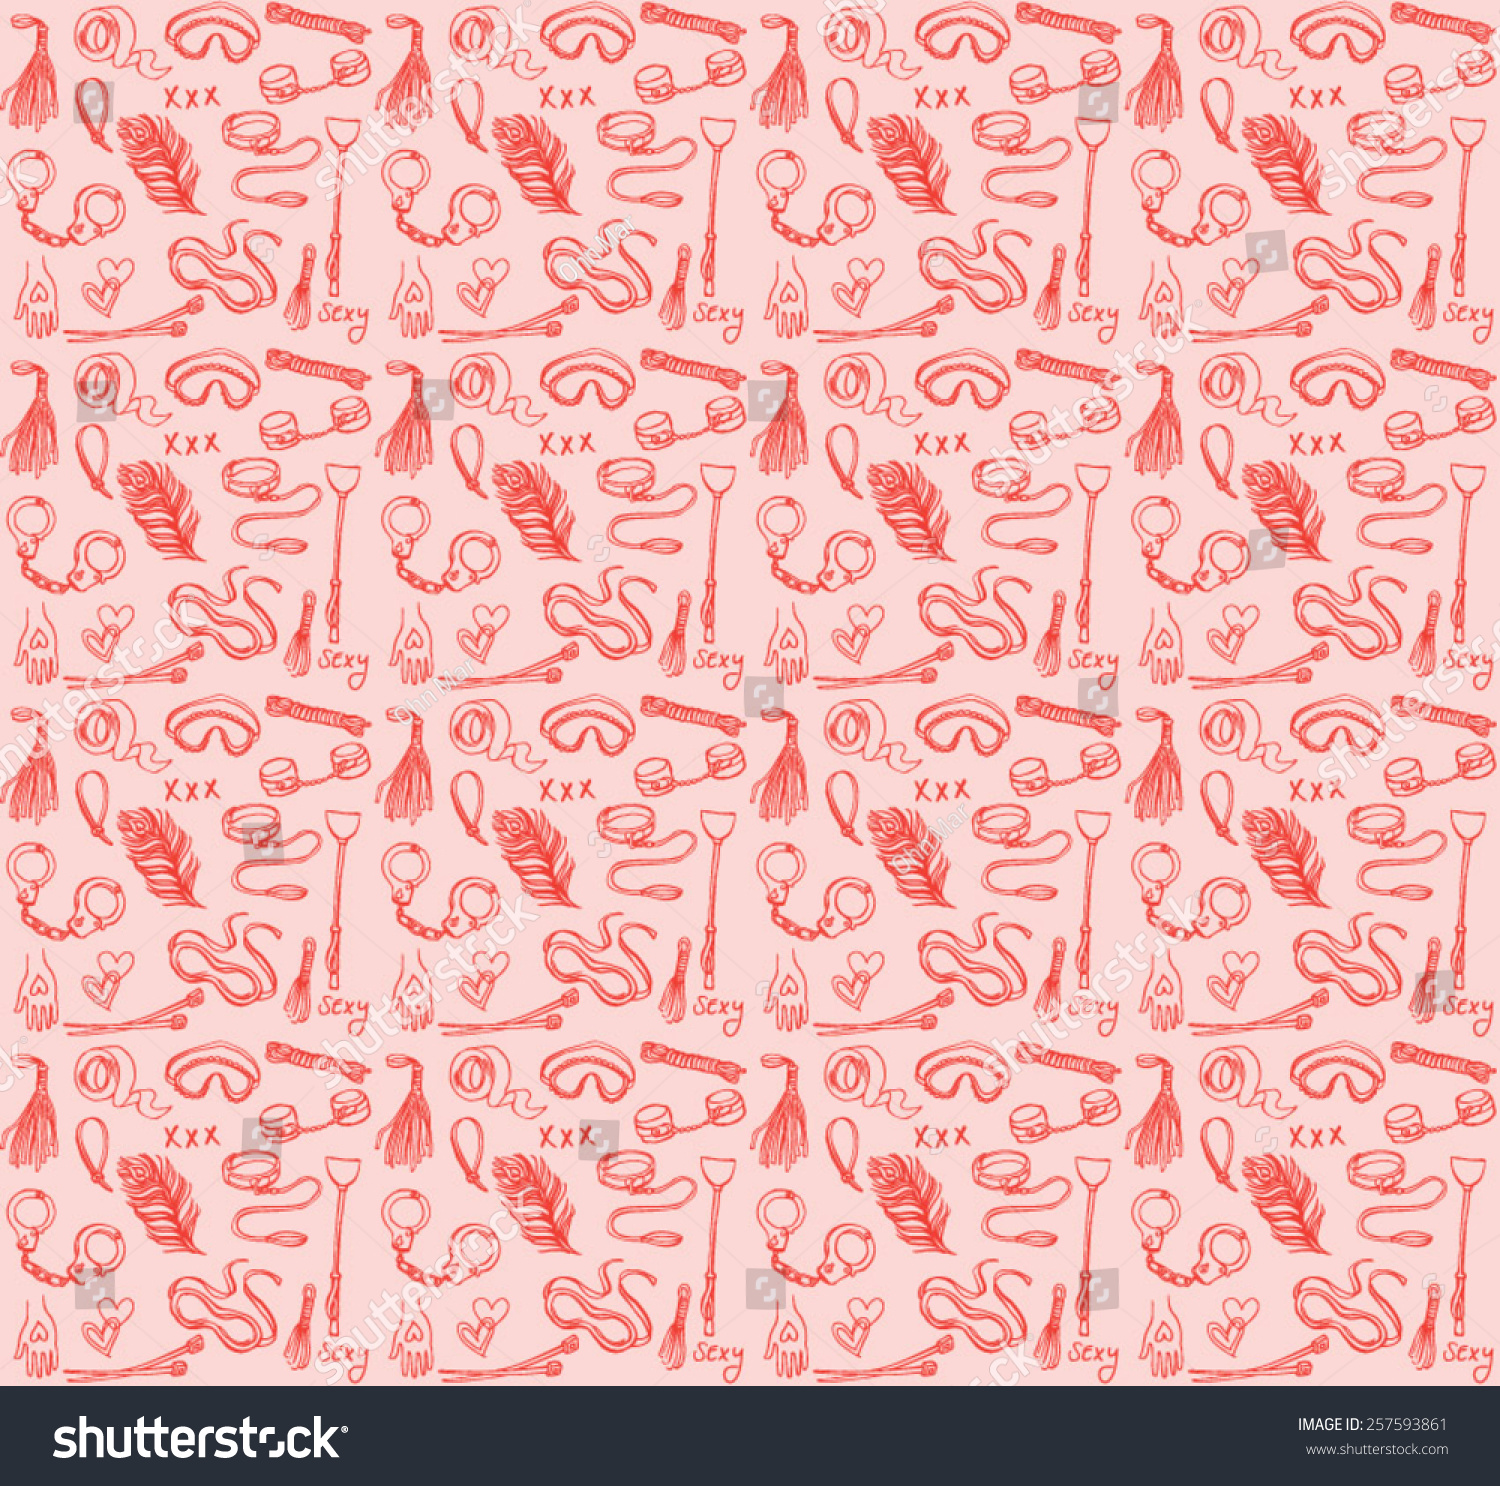 Bondage Submission Domination Seamless Background Stock Vector 1500x1486